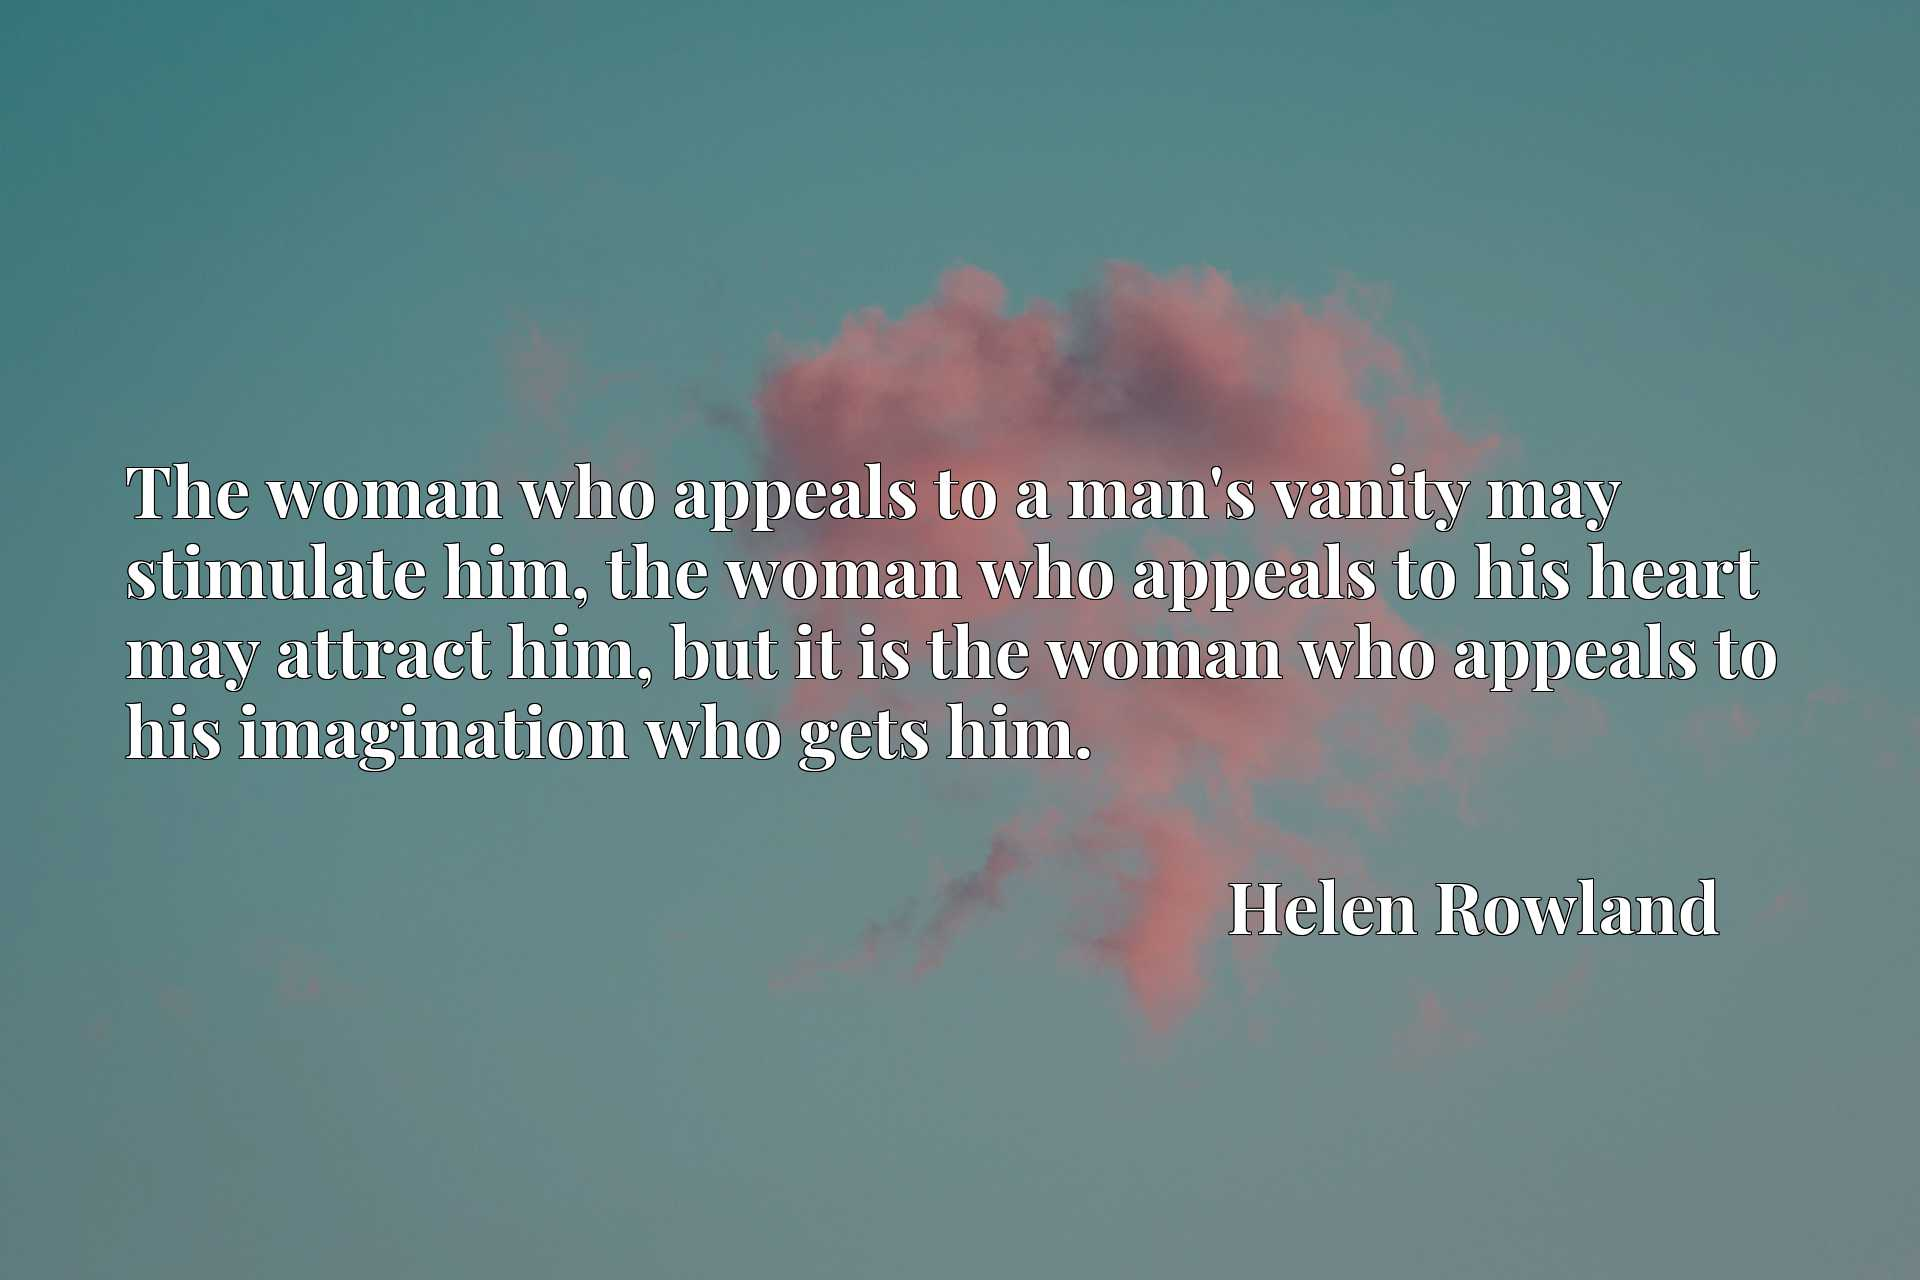 Quote Picture :The woman who appeals to a man's vanity may stimulate him, the woman who appeals to his heart may attract him, but it is the woman who appeals to his imagination who gets him.